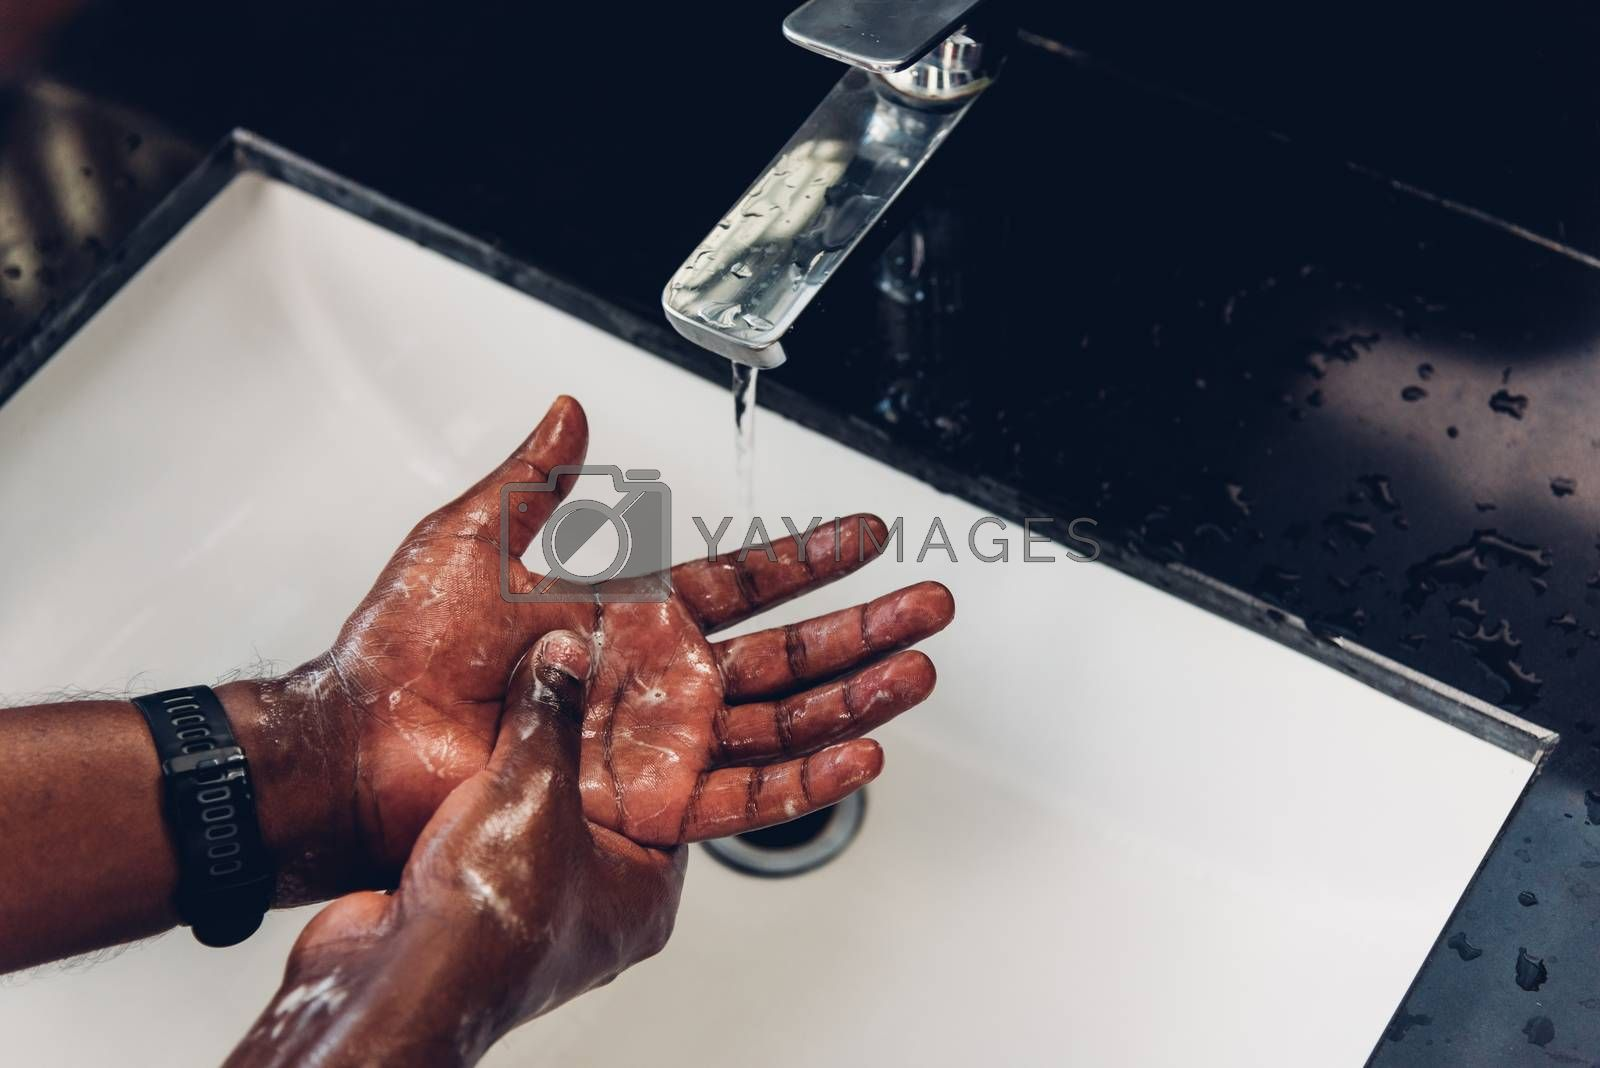 Closeup washing black man hands rubbing with soap and water in sinks to prevent outbreak coronavirus hygiene to stop spreading virus, hygiene for quarantine cleaning COVID-19 concept